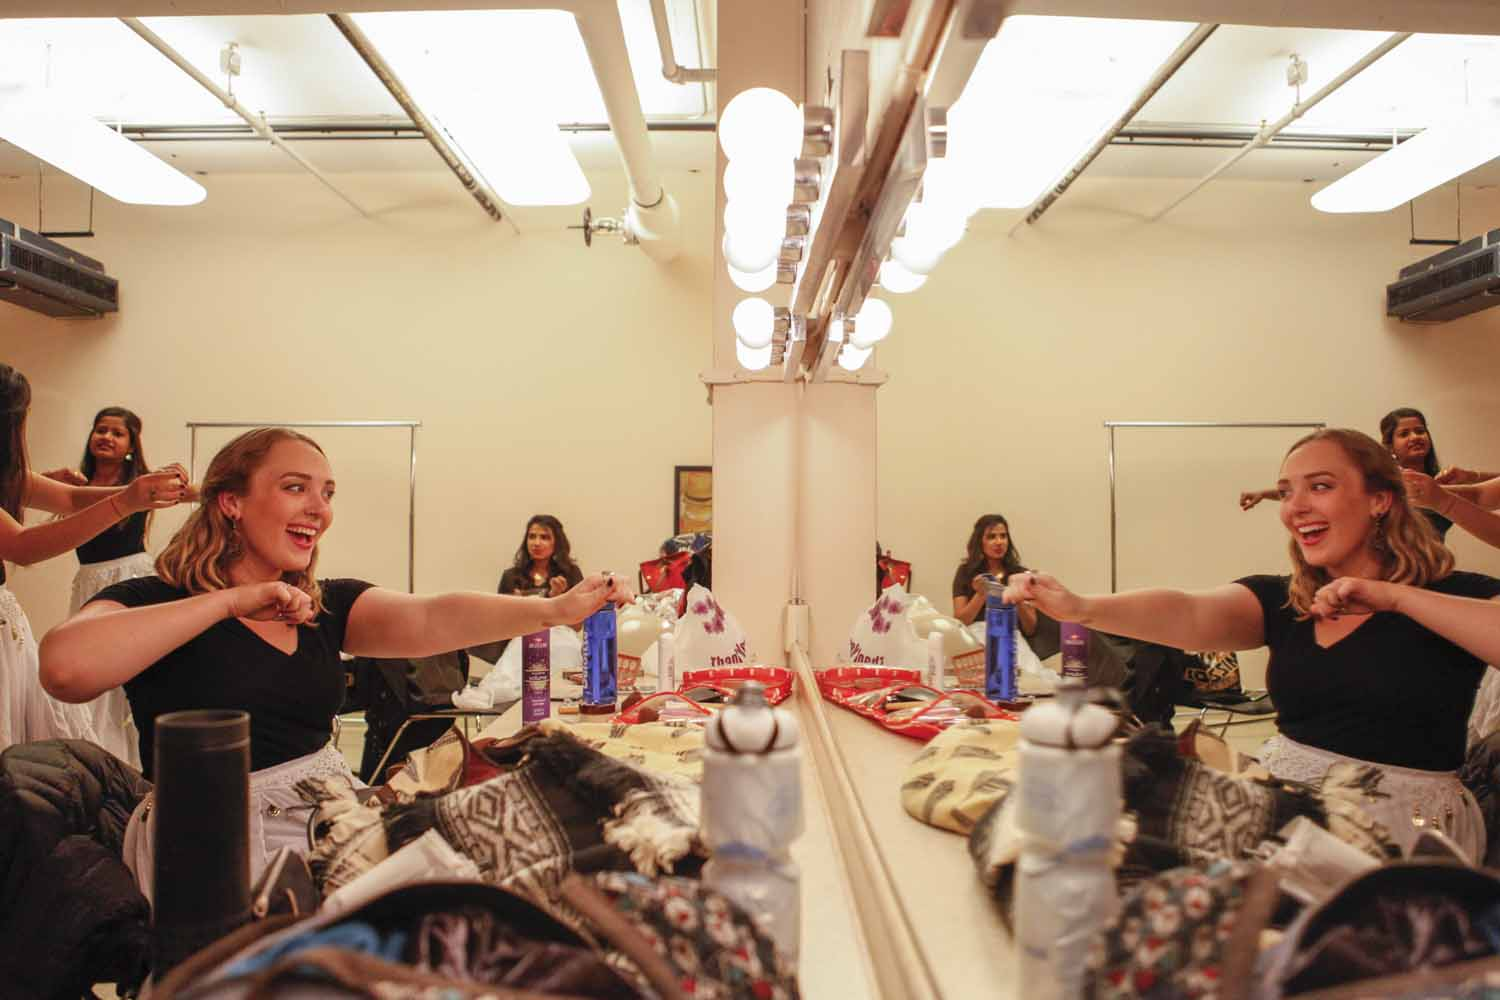 Kelsey Burns practices arm movements to her group's upcoming performance in the mirror of a dressing room in Jesse Hall as the rest of the ensembe dances around the room.